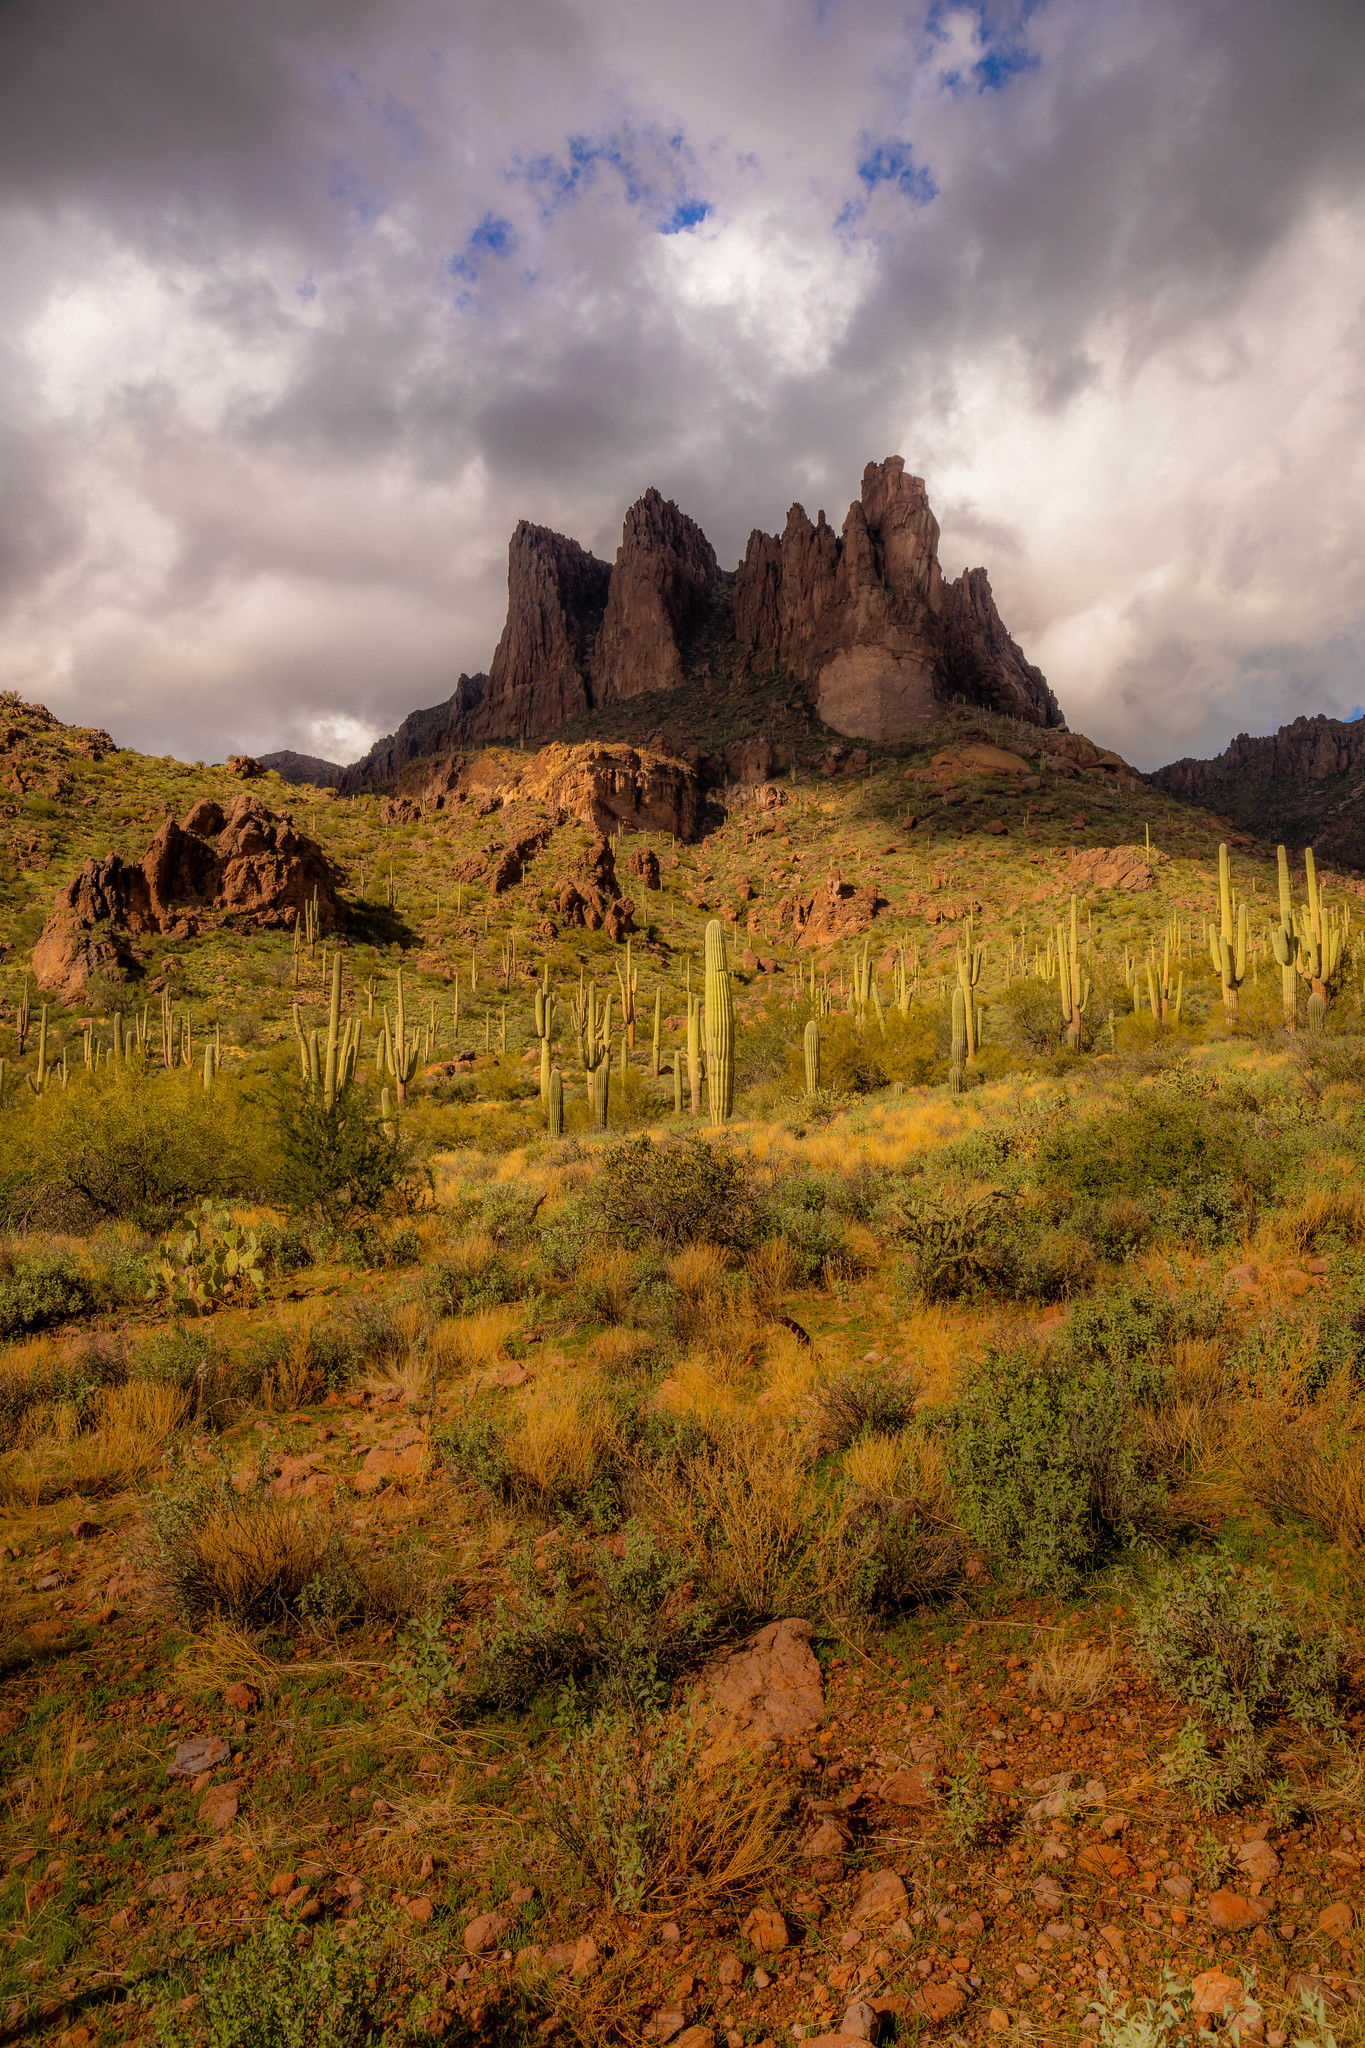 12.28. Superstition Mountain, AZ